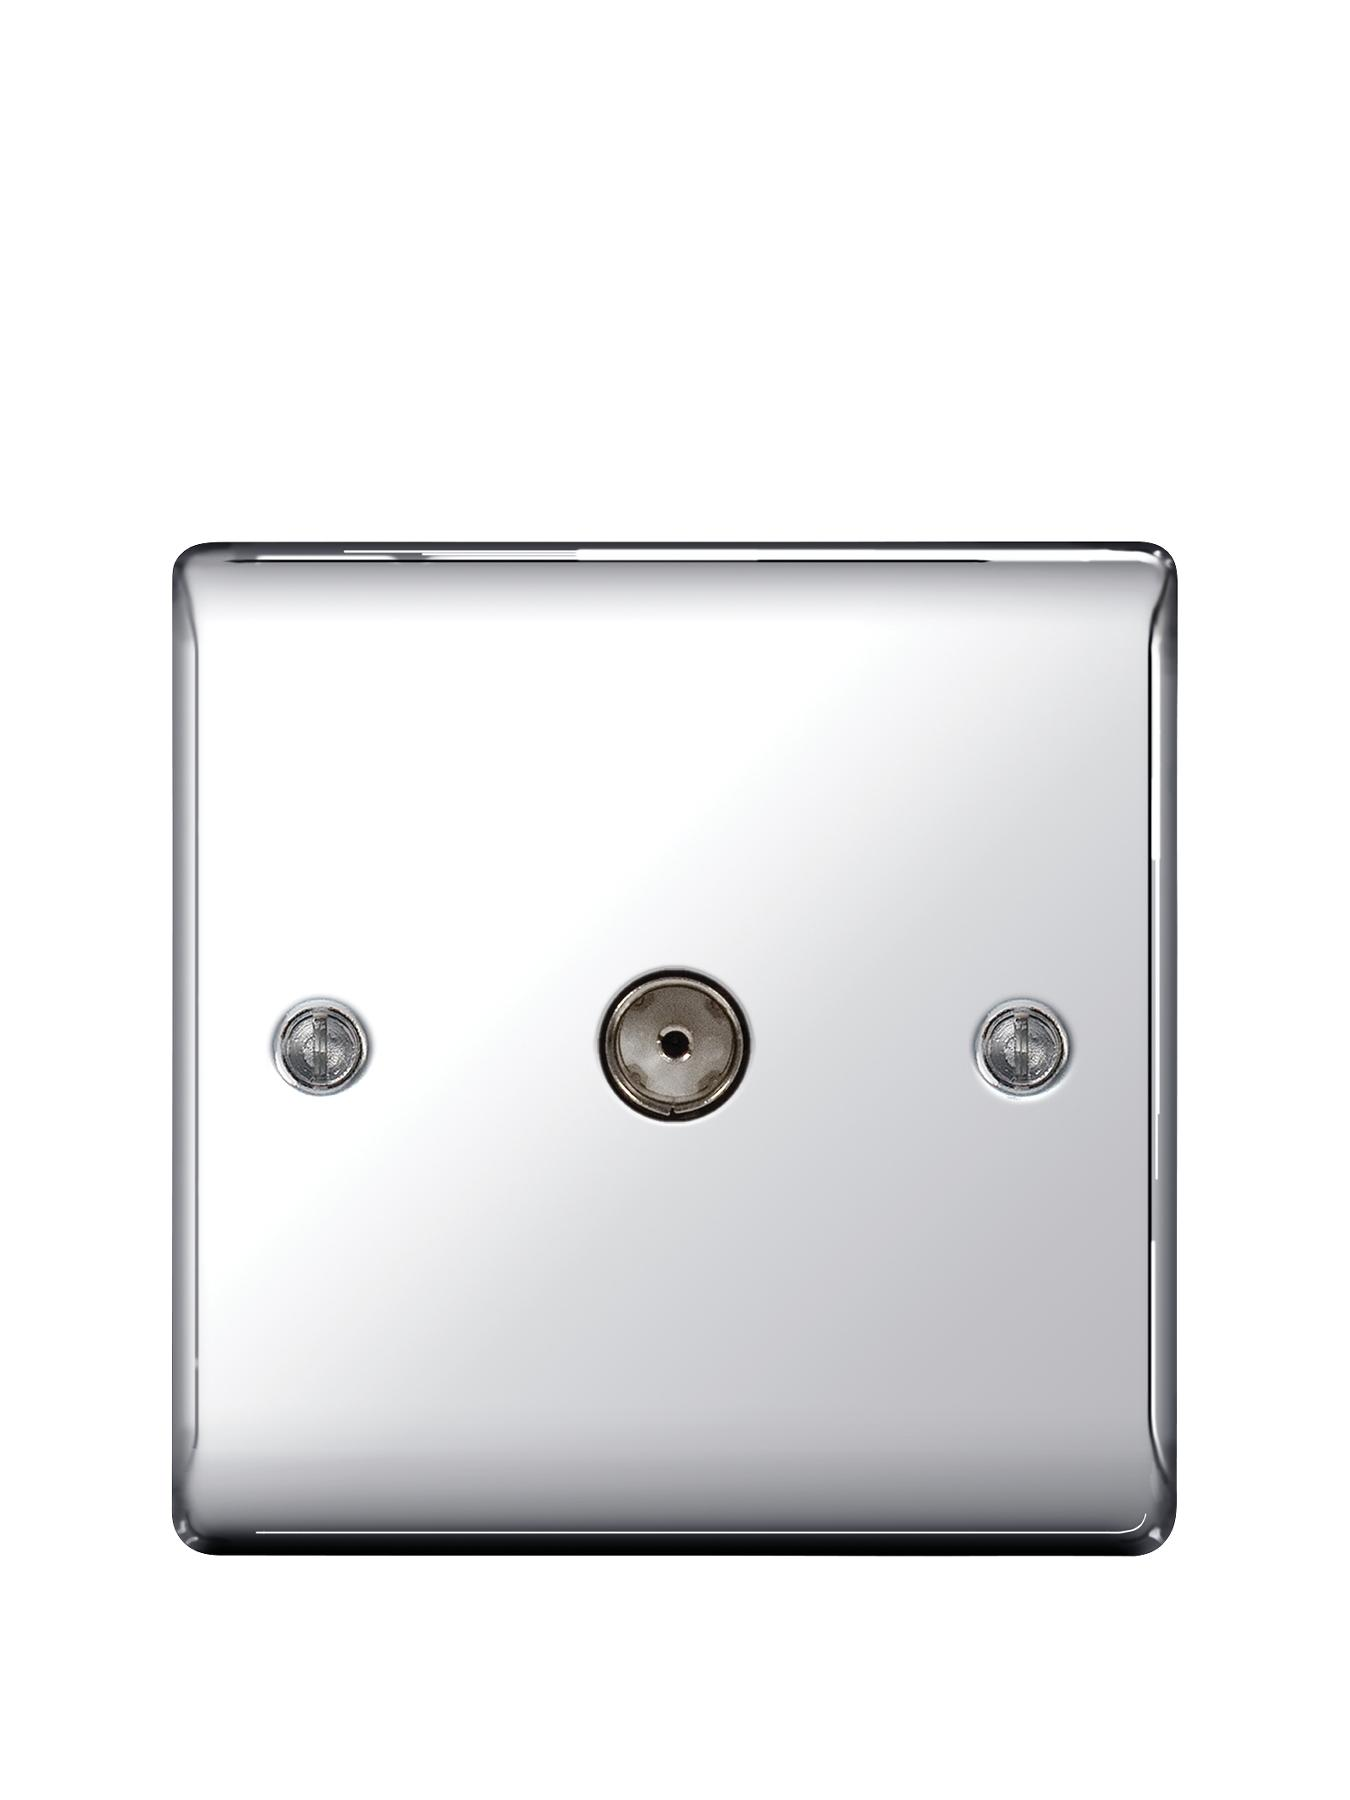 British General Electrical Raised Coax TV Aerial Socket - Polished Chrome